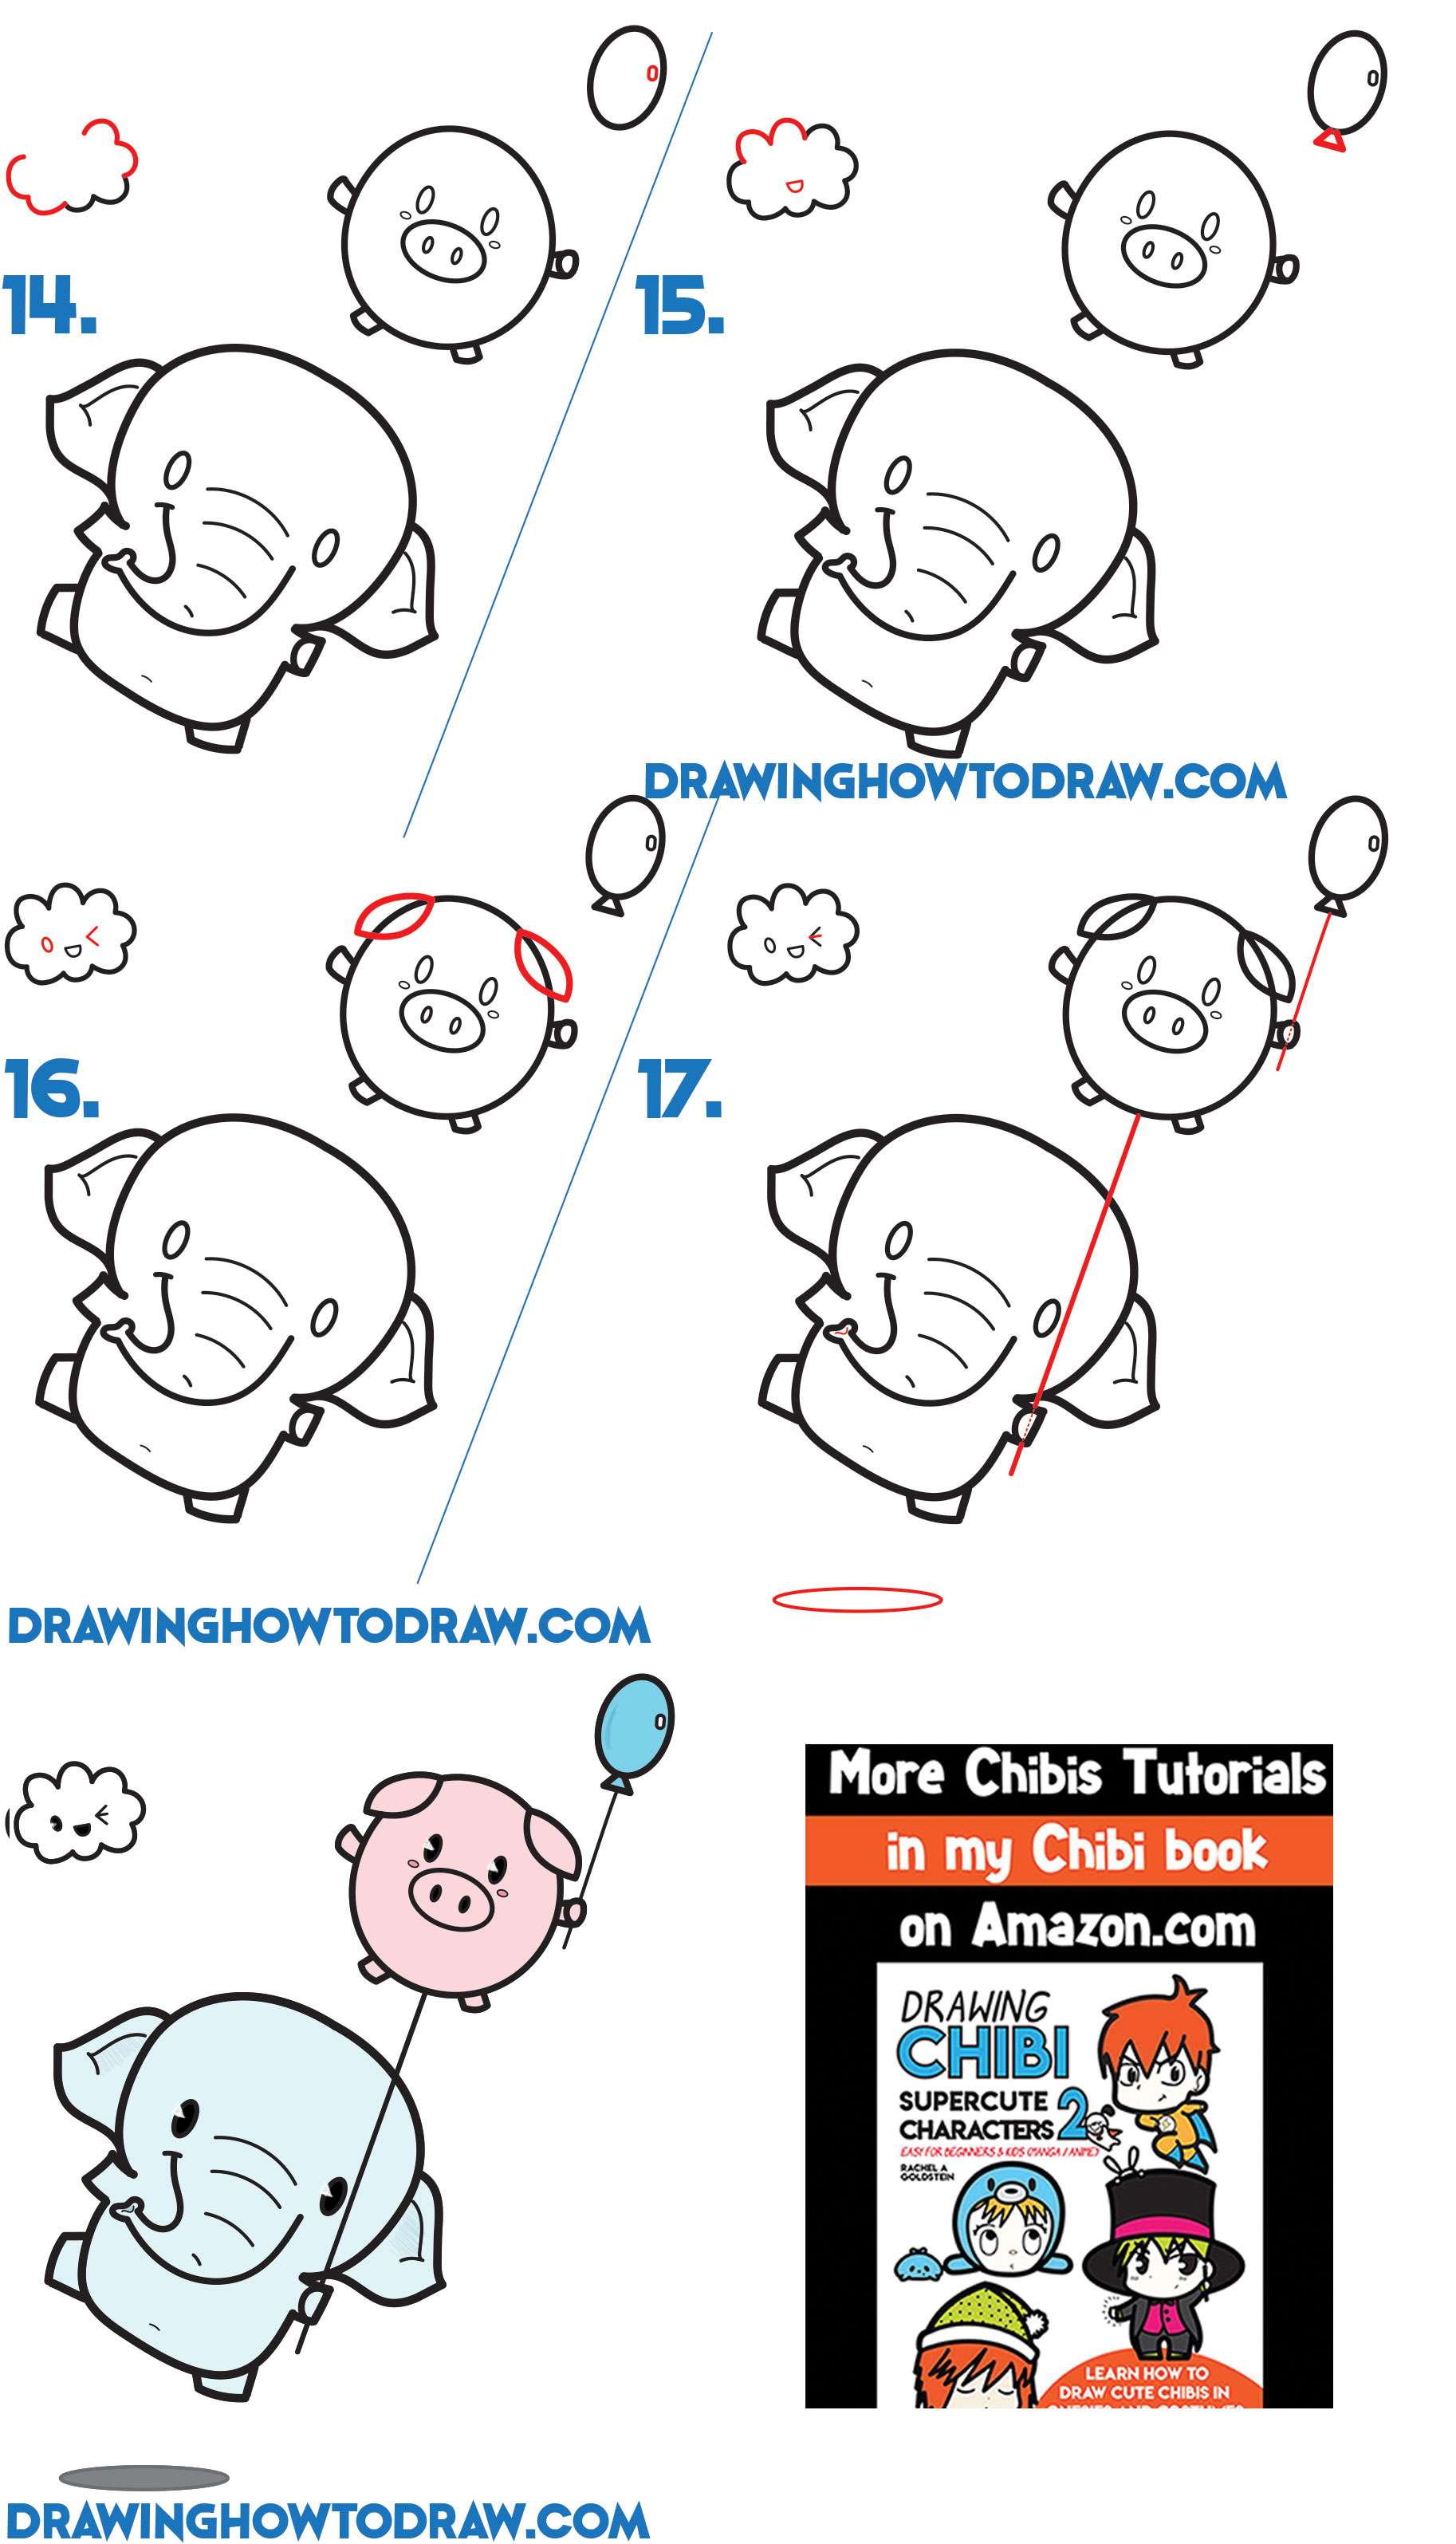 Learn How to Draw a Cute Kawaii / Chibi Elephant Holding a Pig Balloon Simple Step by Step Drawing Tutorial for Beginners